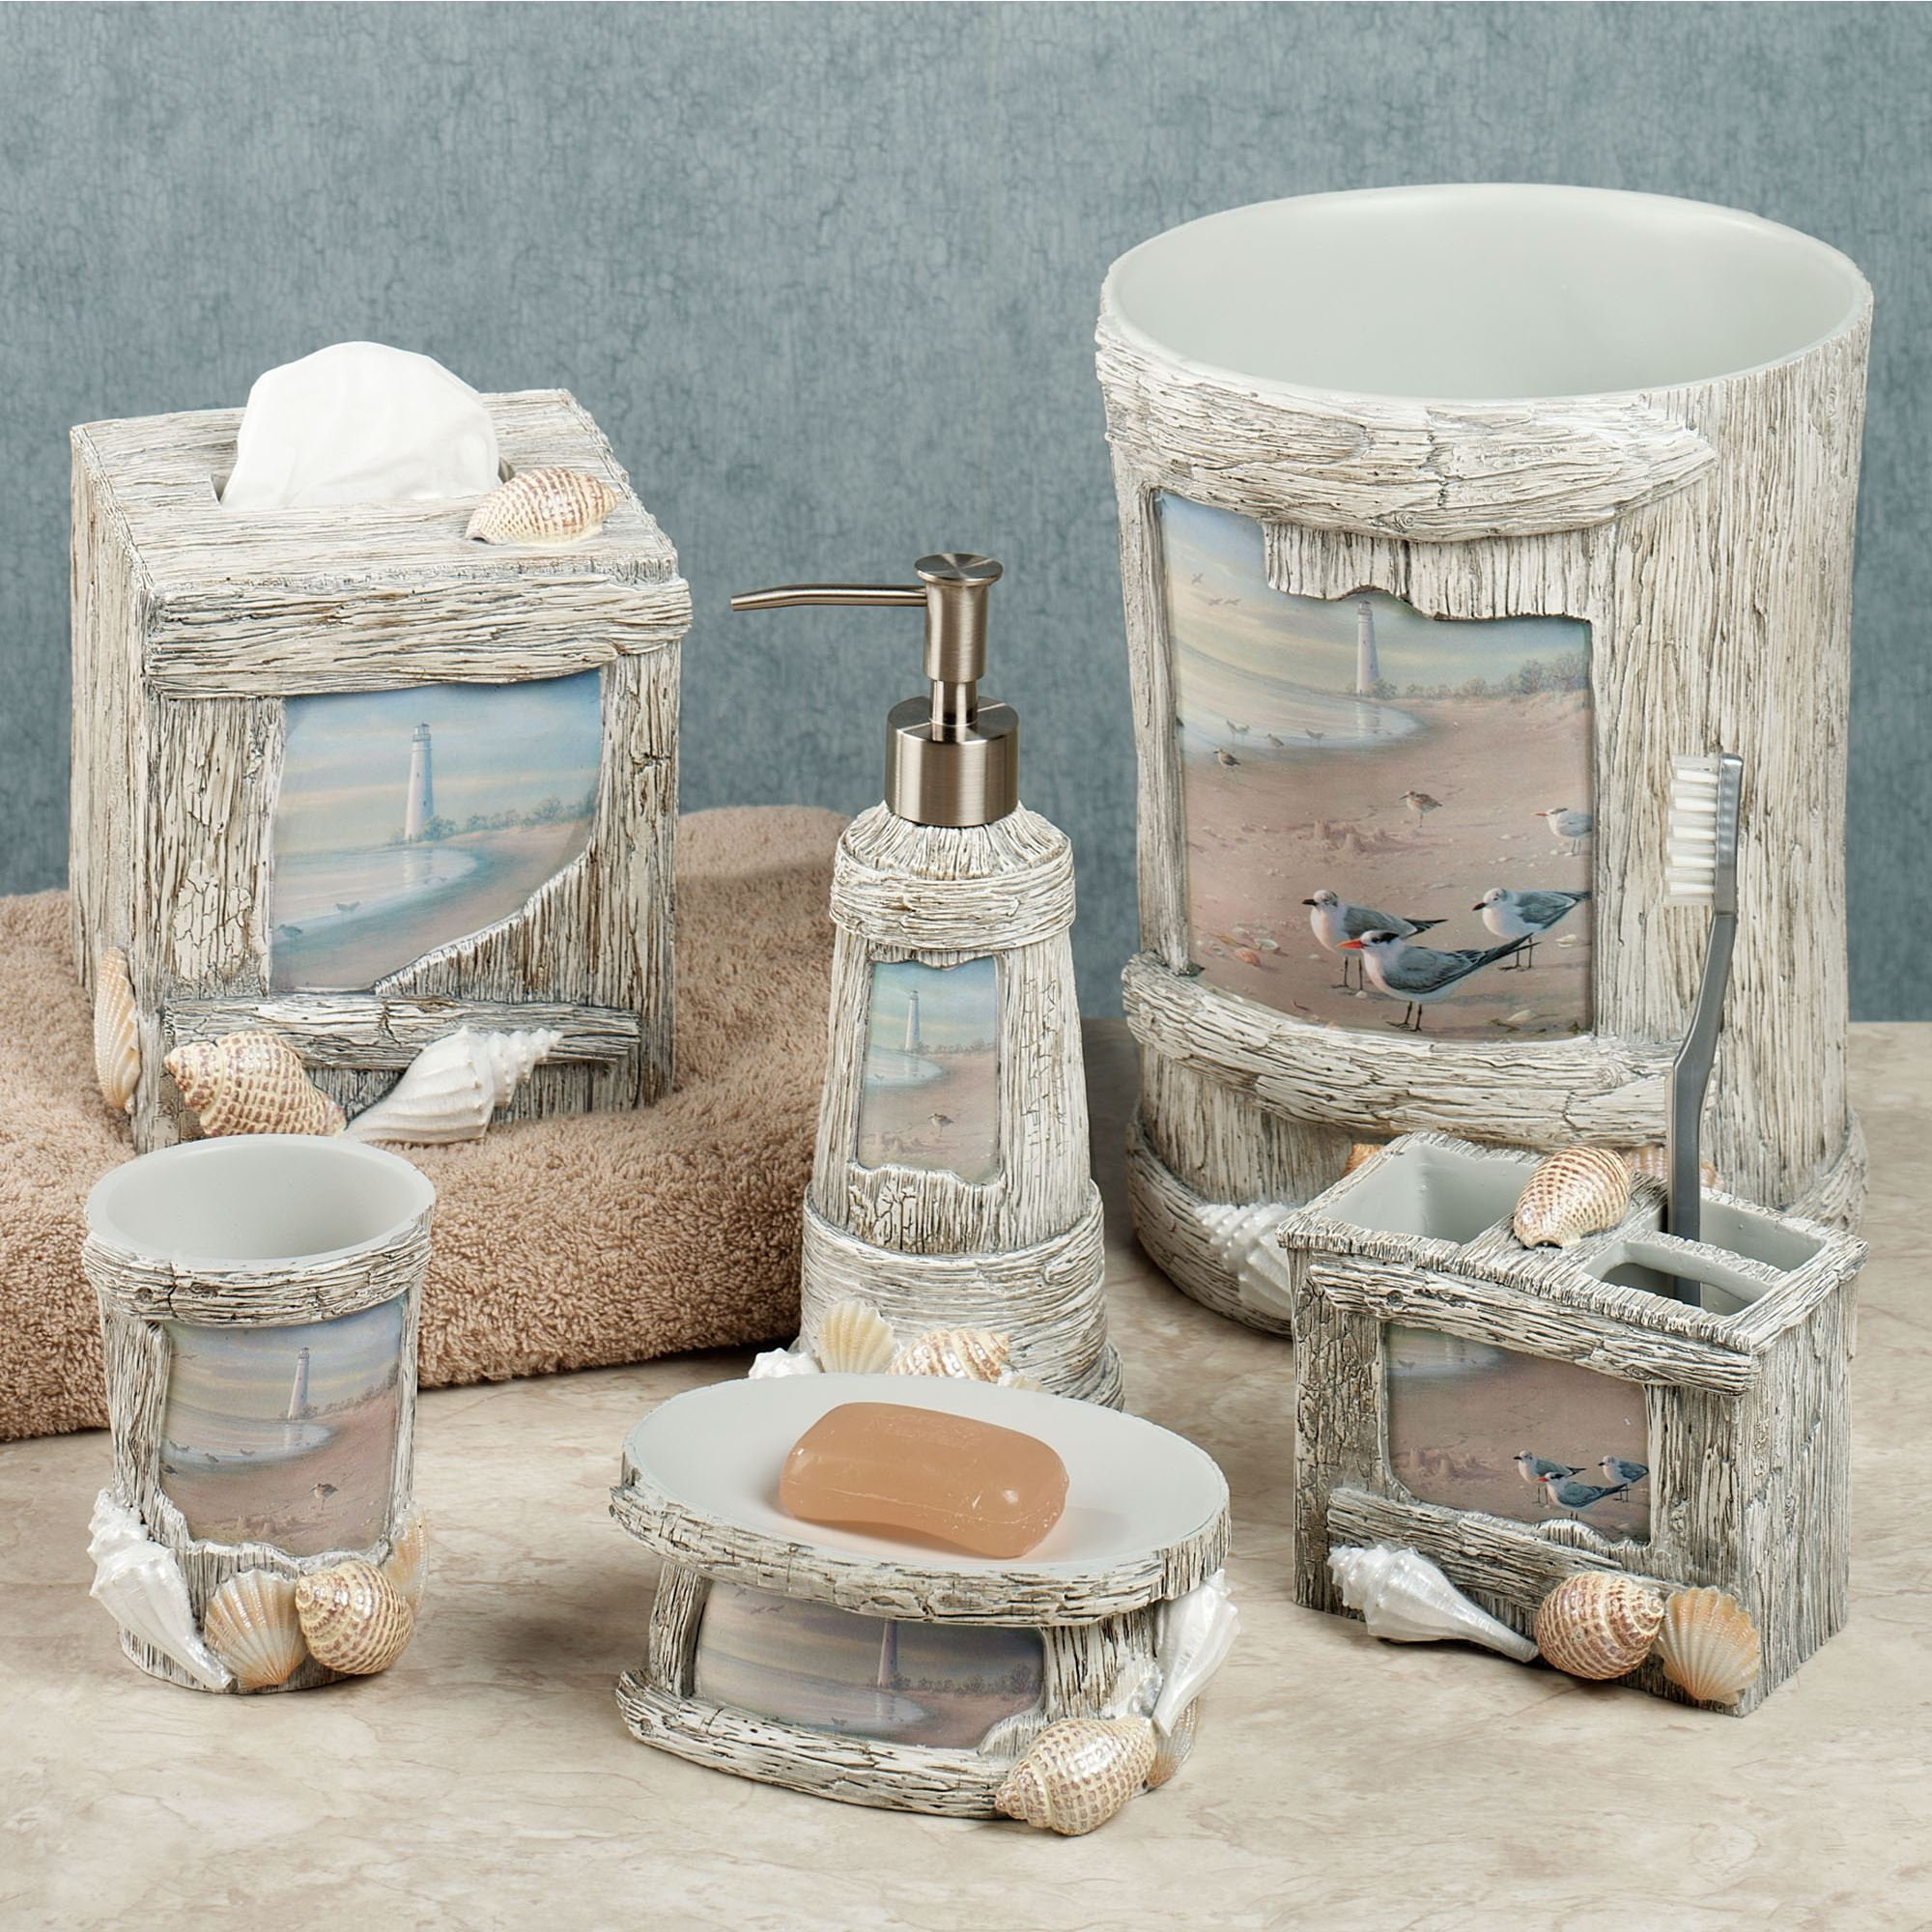 At the beach bath accessories for Accessoire salle de bain bleu